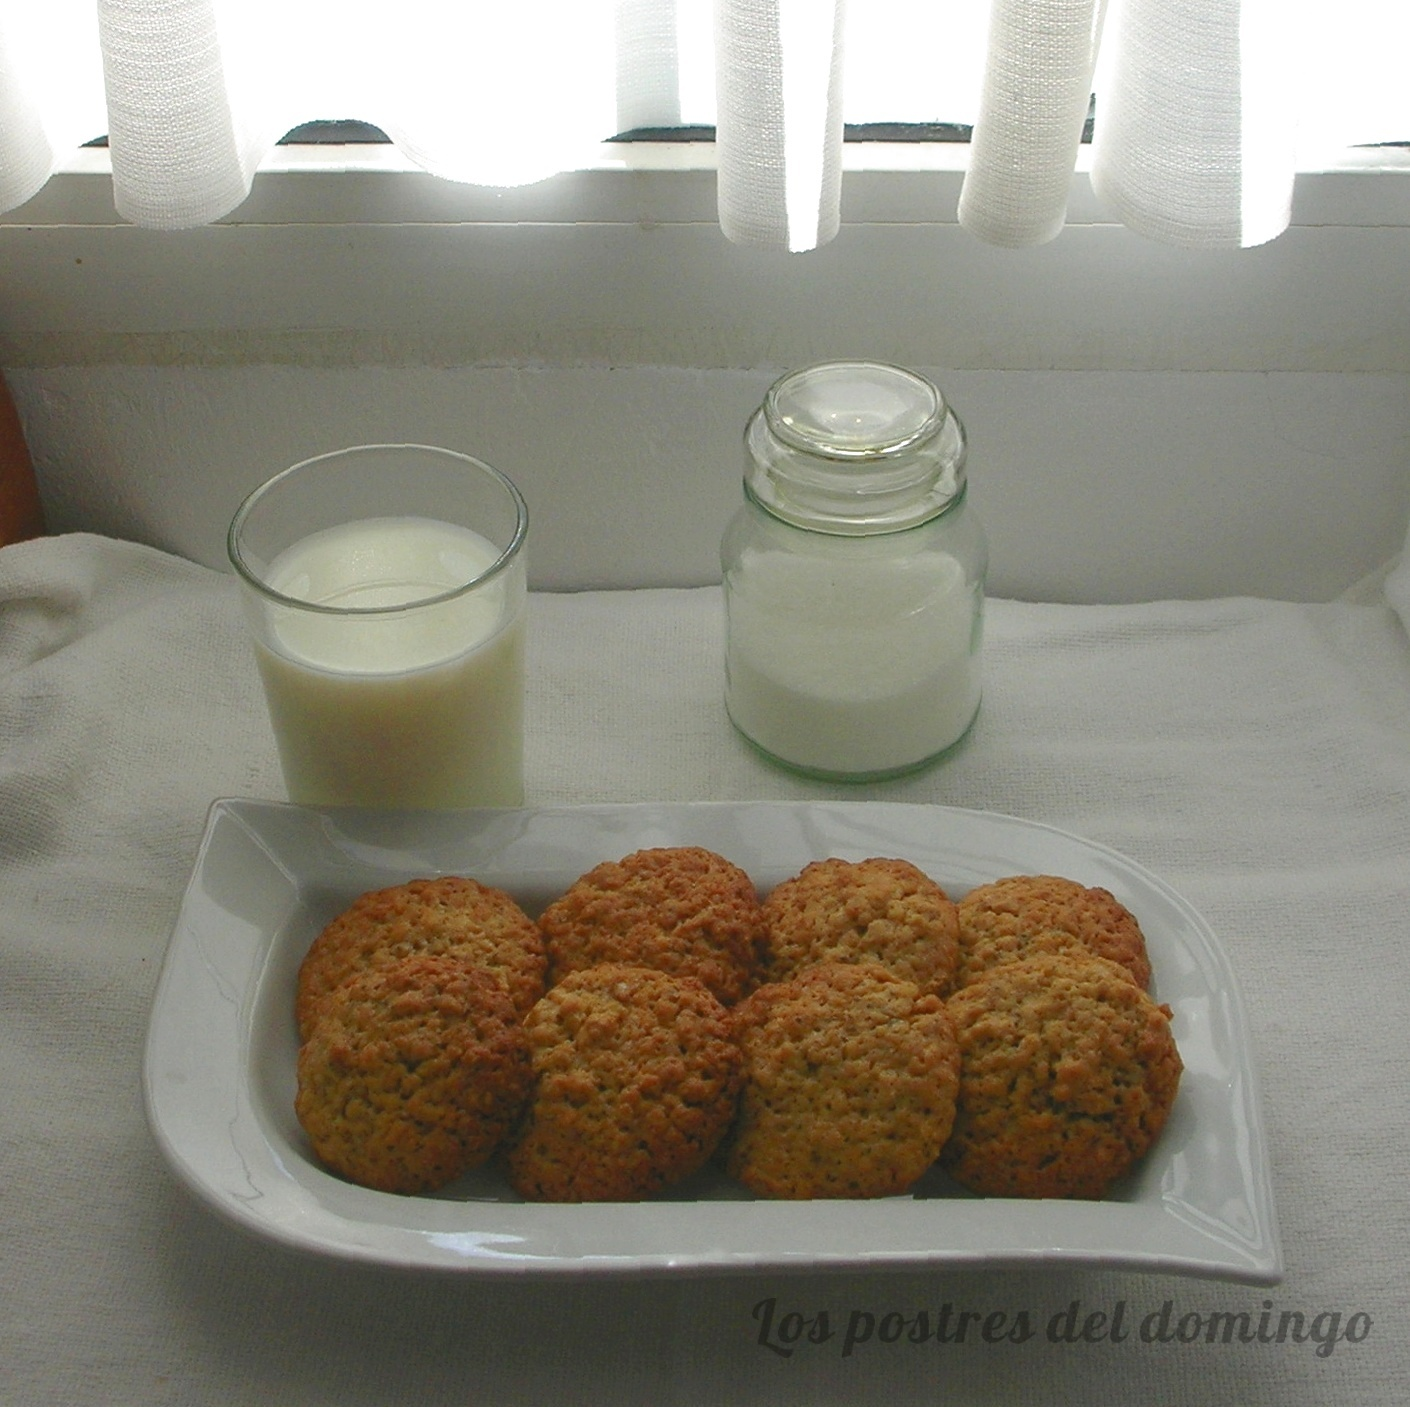 galletas de avena con semillas